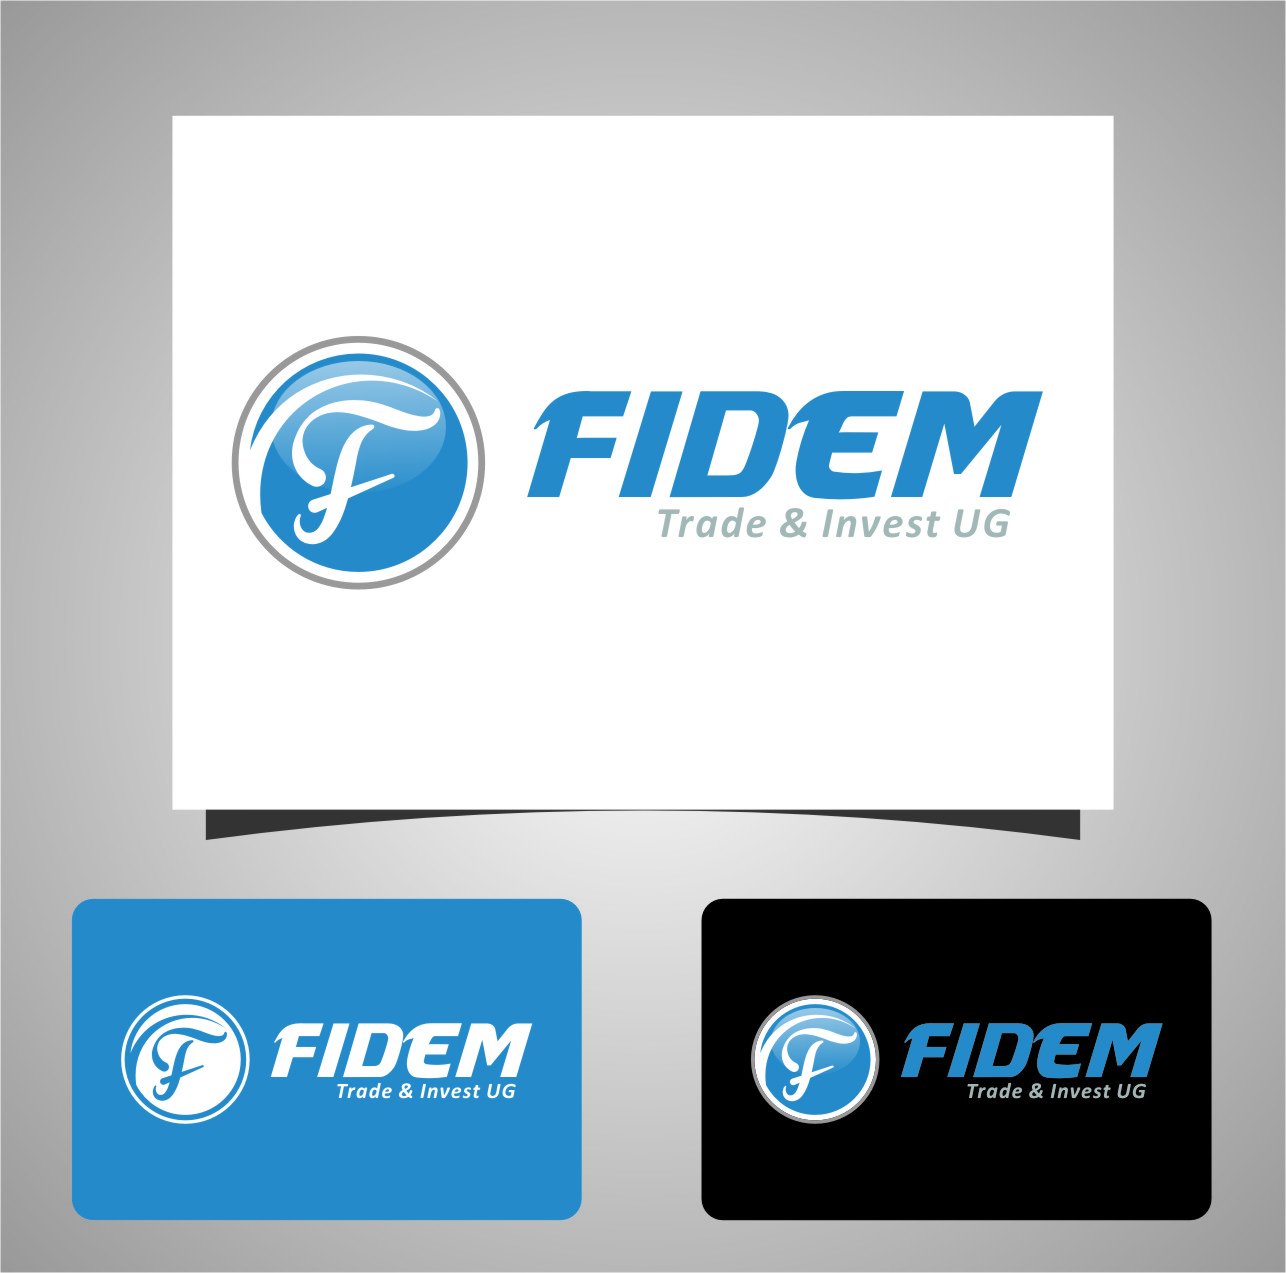 Logo Design by Ngepet_art - Entry No. 735 in the Logo Design Contest Professional Logo Design for FIDEM Trade & Invest UG.